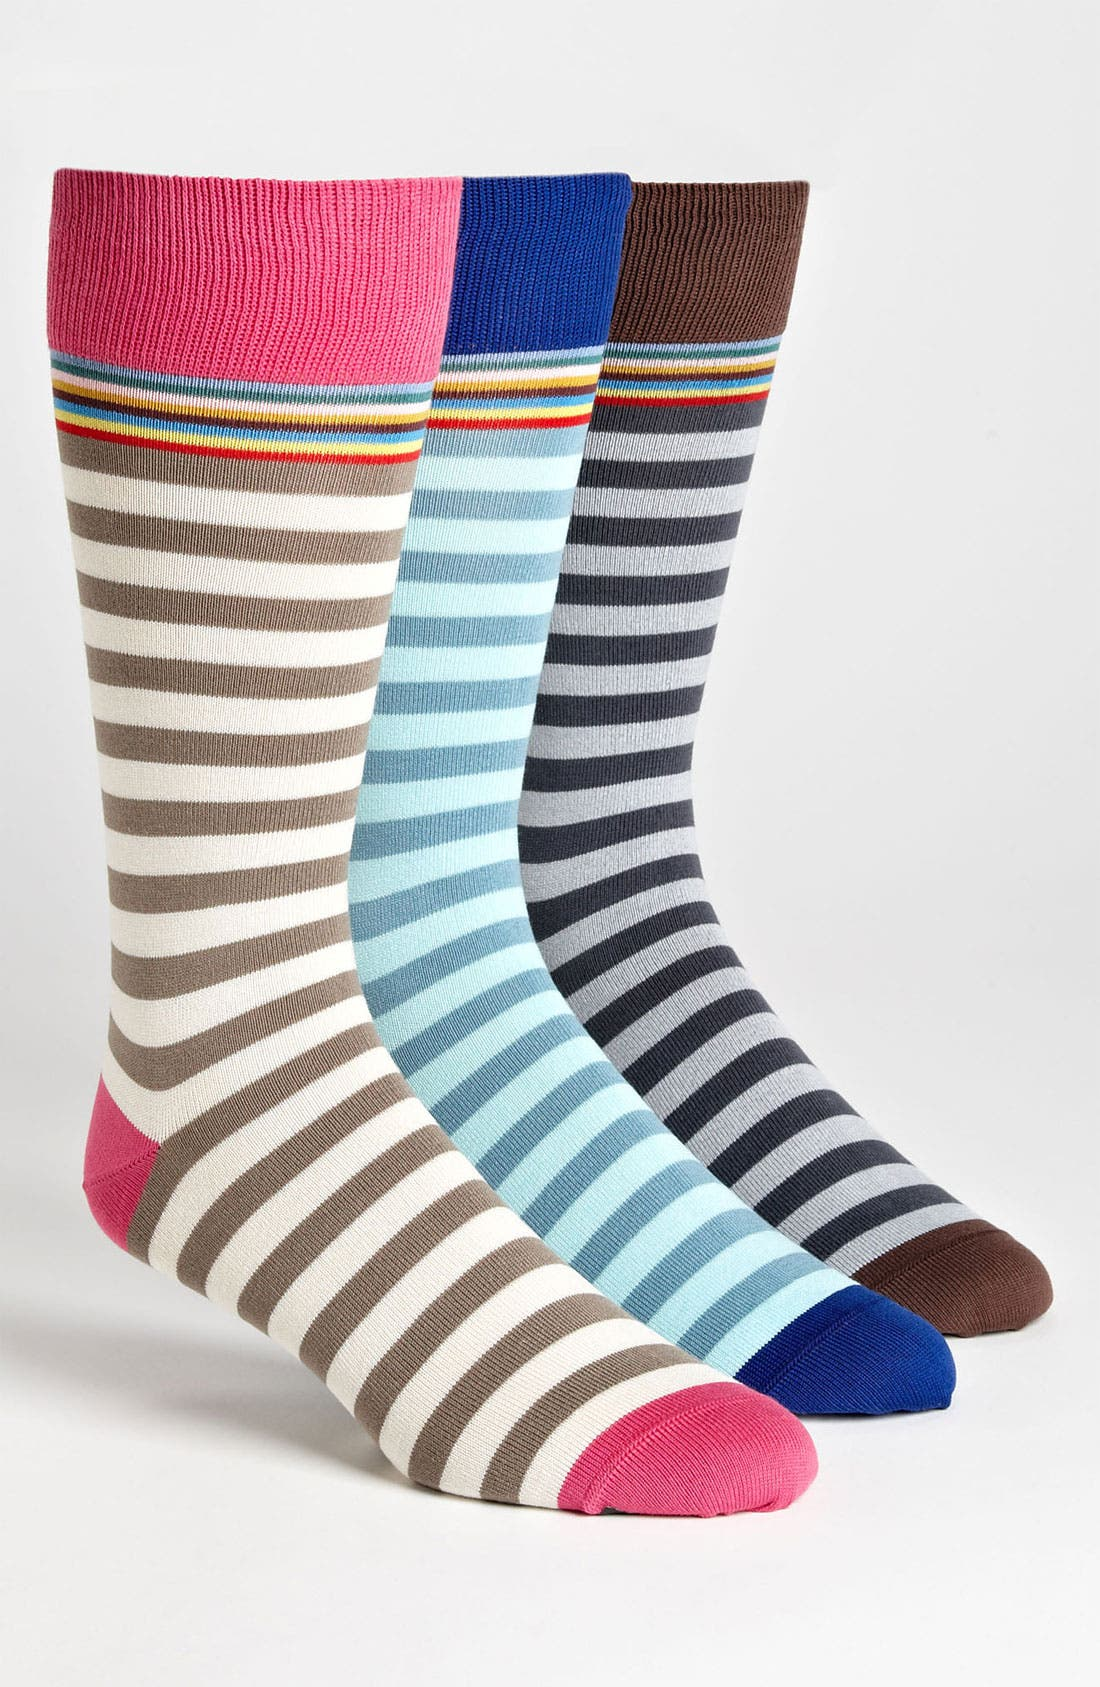 Alternate Image 1 Selected - Paul Smith Accessories Print Socks (3-Pack)